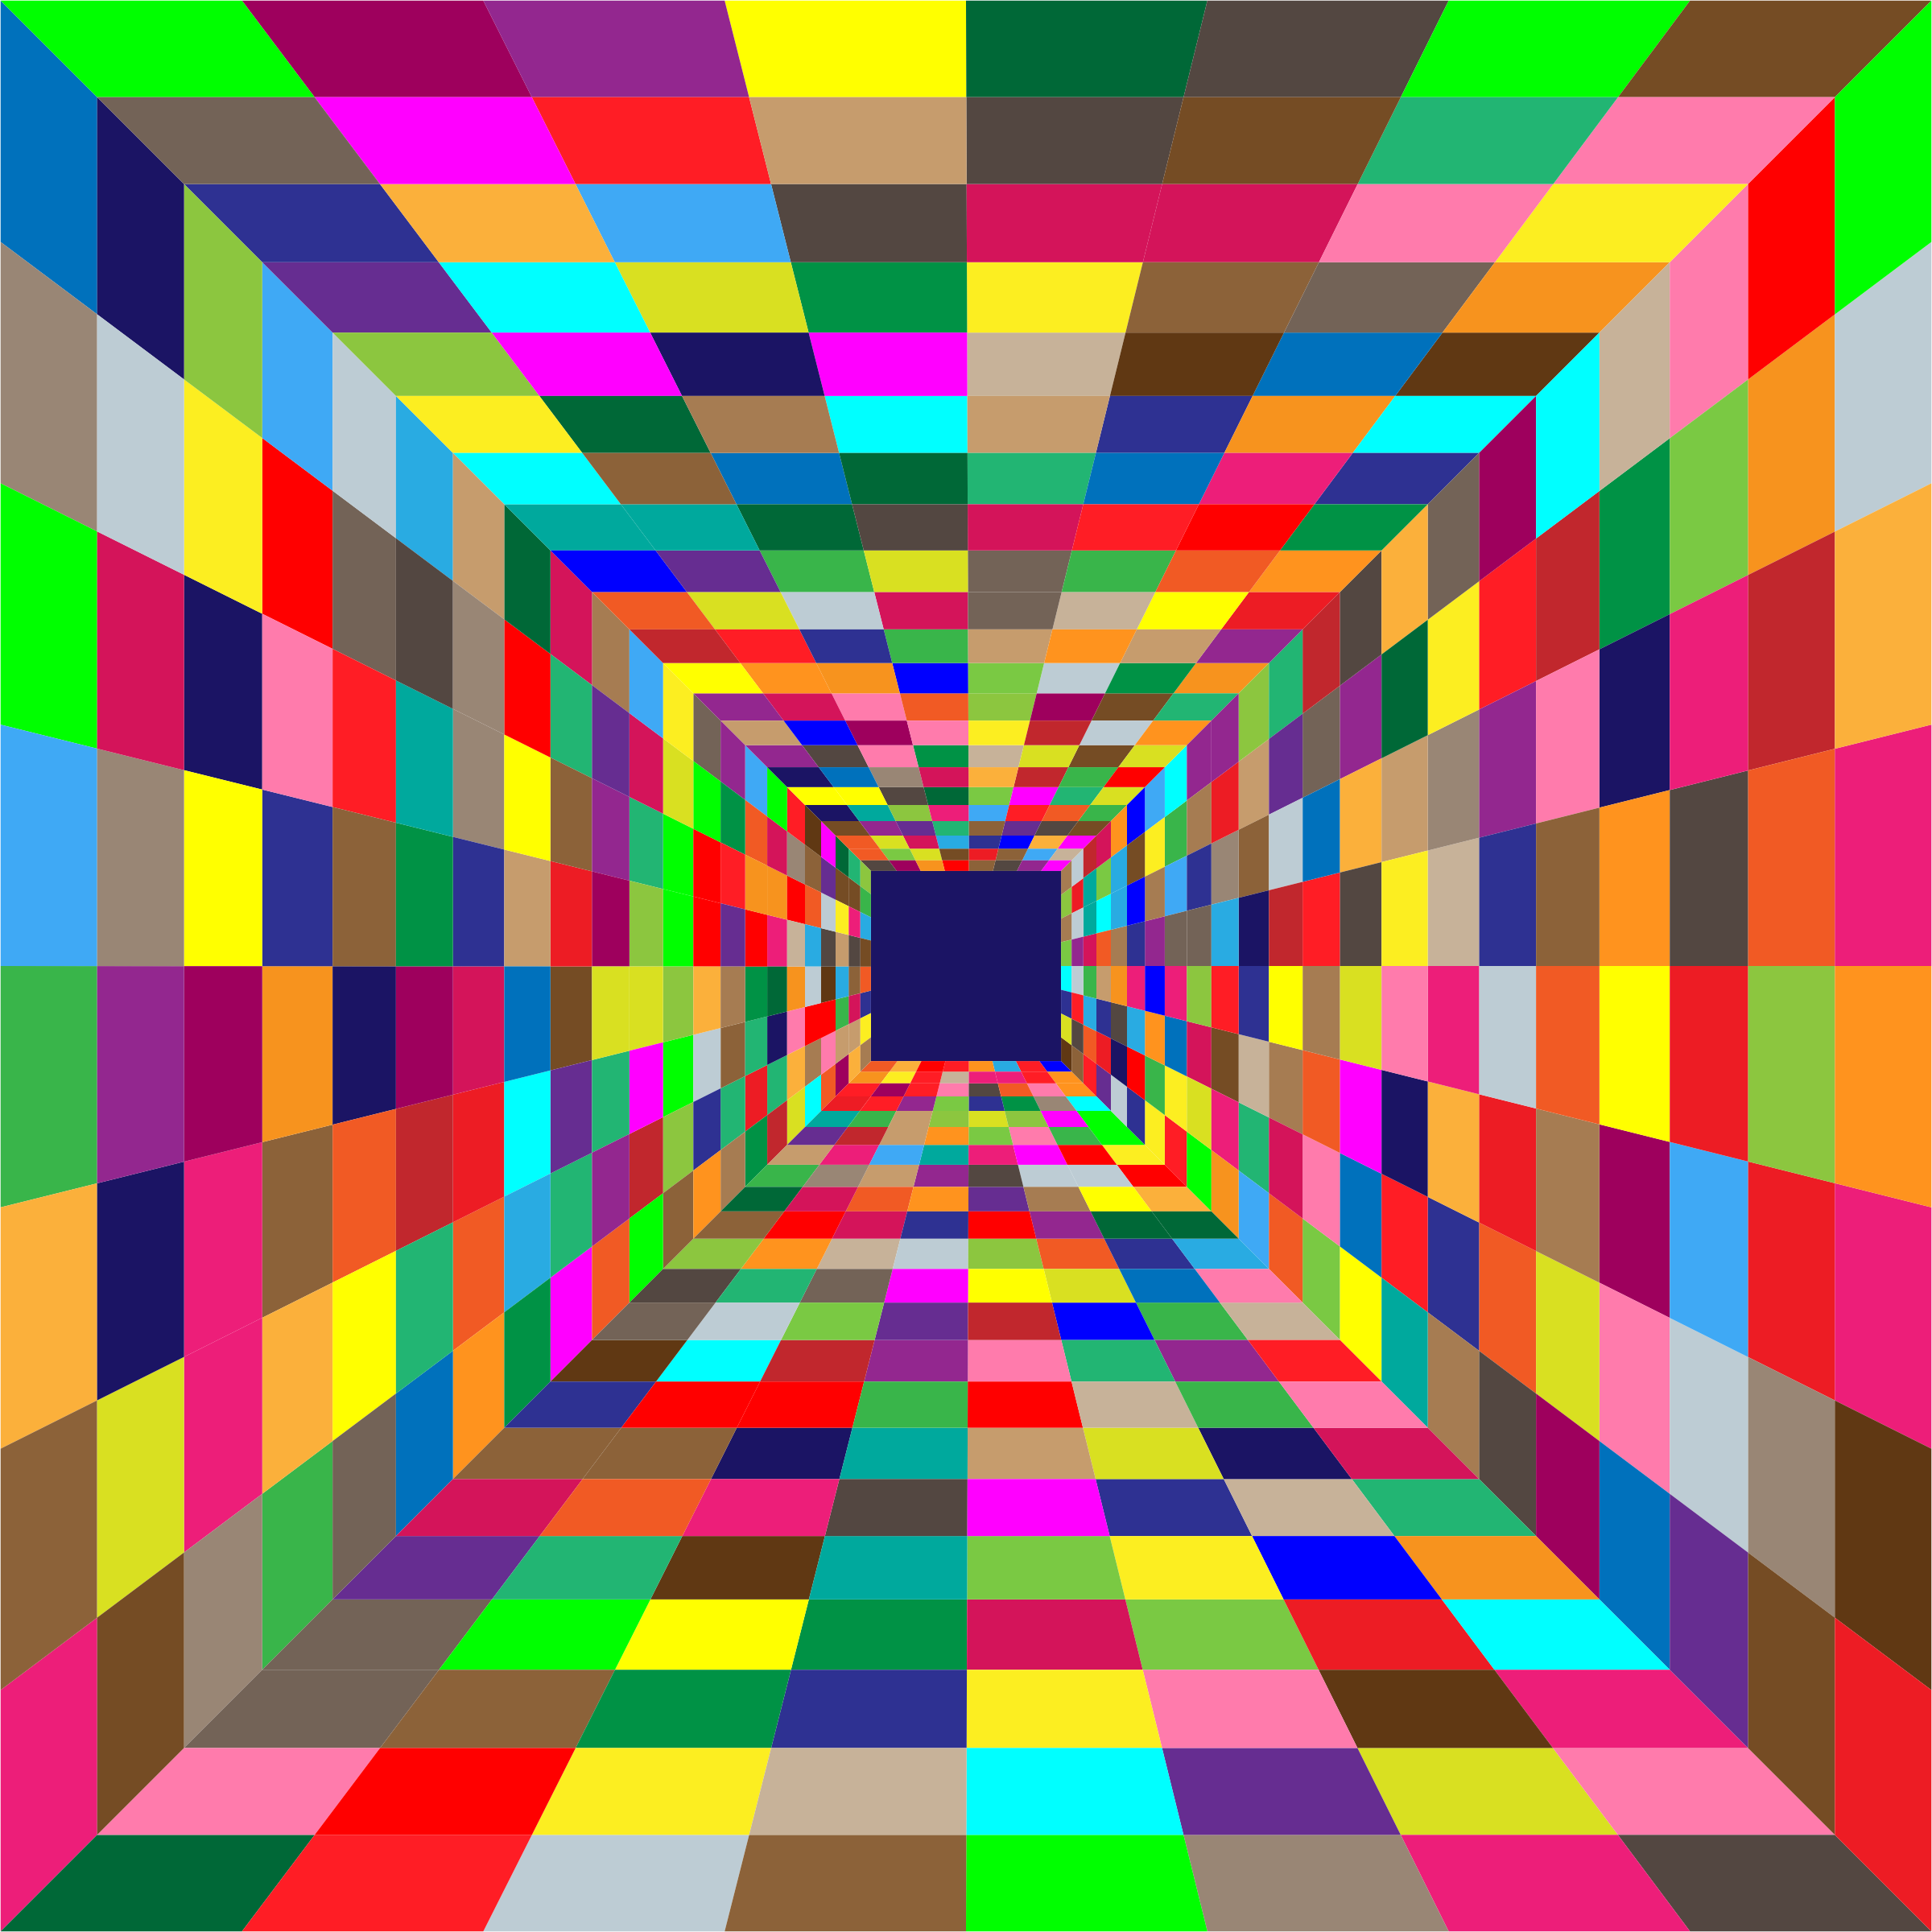 Colorful Perspective Grid 2 by GDJ